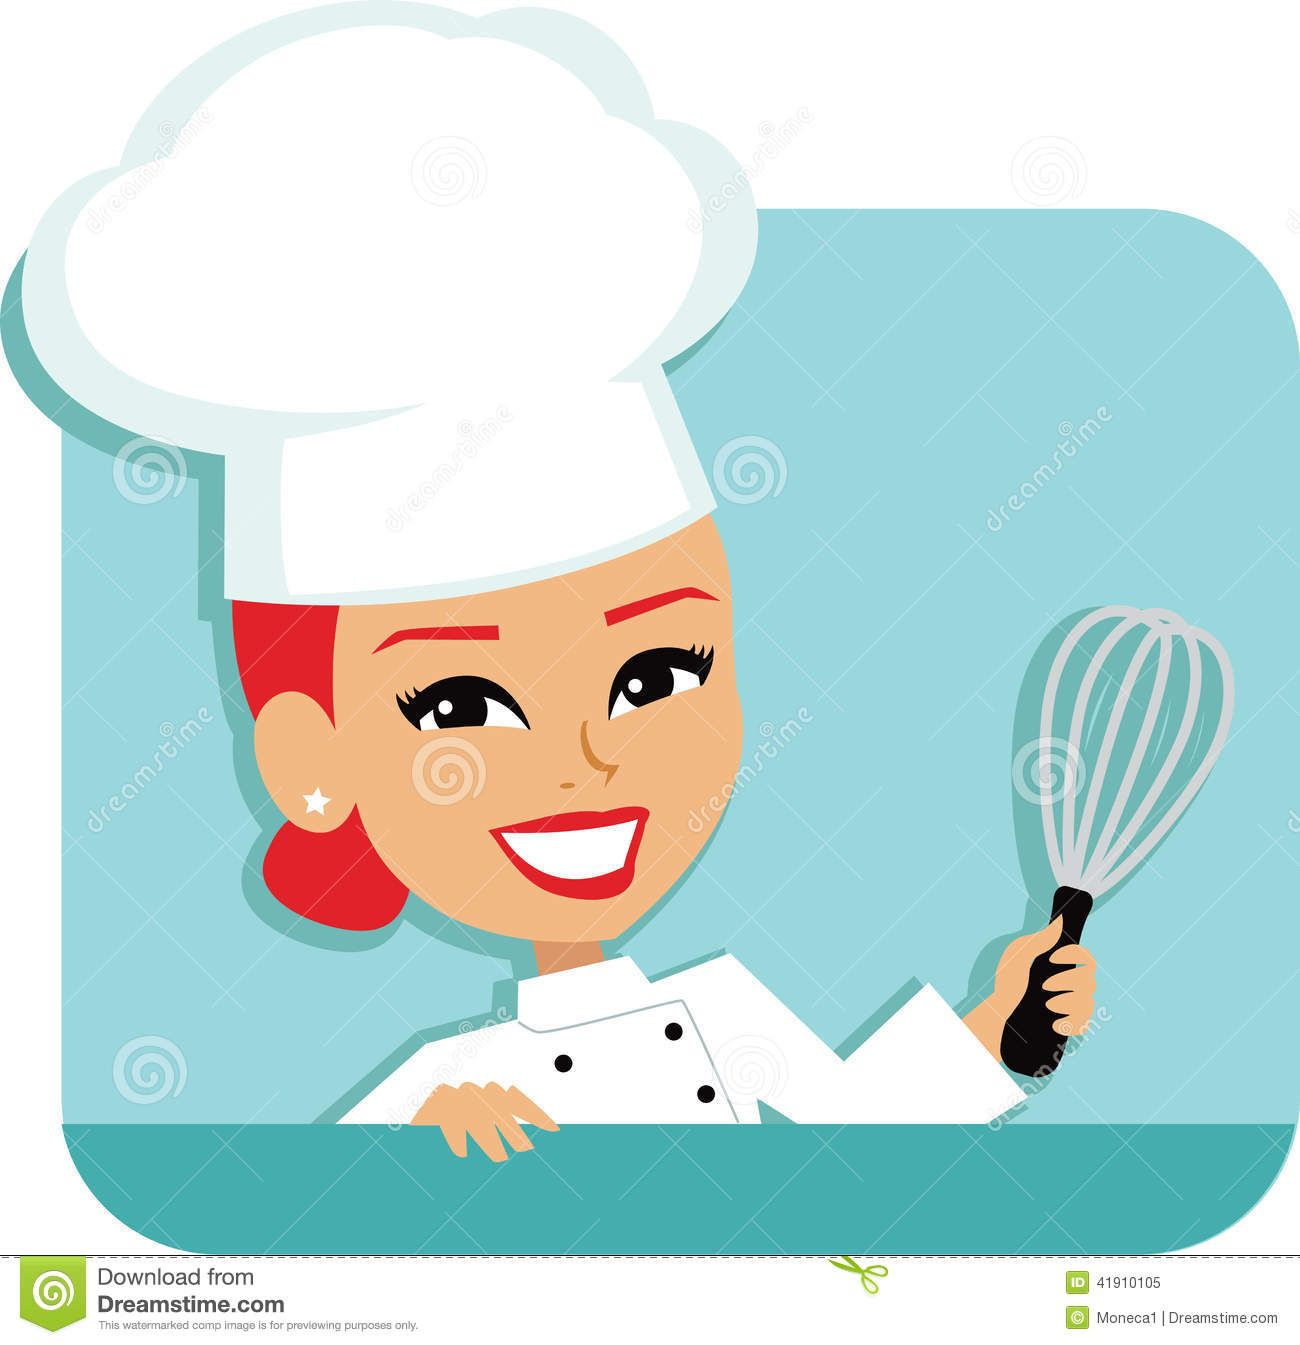 female chef cartoon - Google Search | chef | Pinterest ...